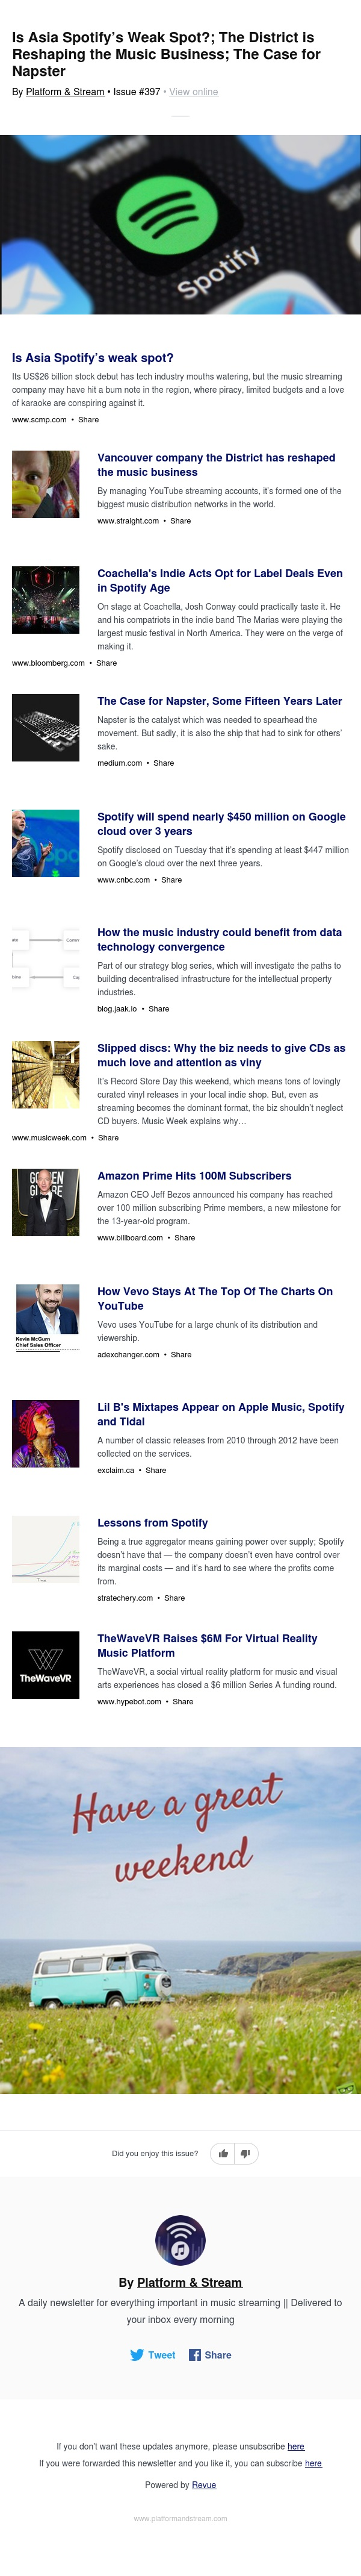 Is Asia Spotify's Weak Spot?; The District is Reshaping the Music Business; The Case for Napster